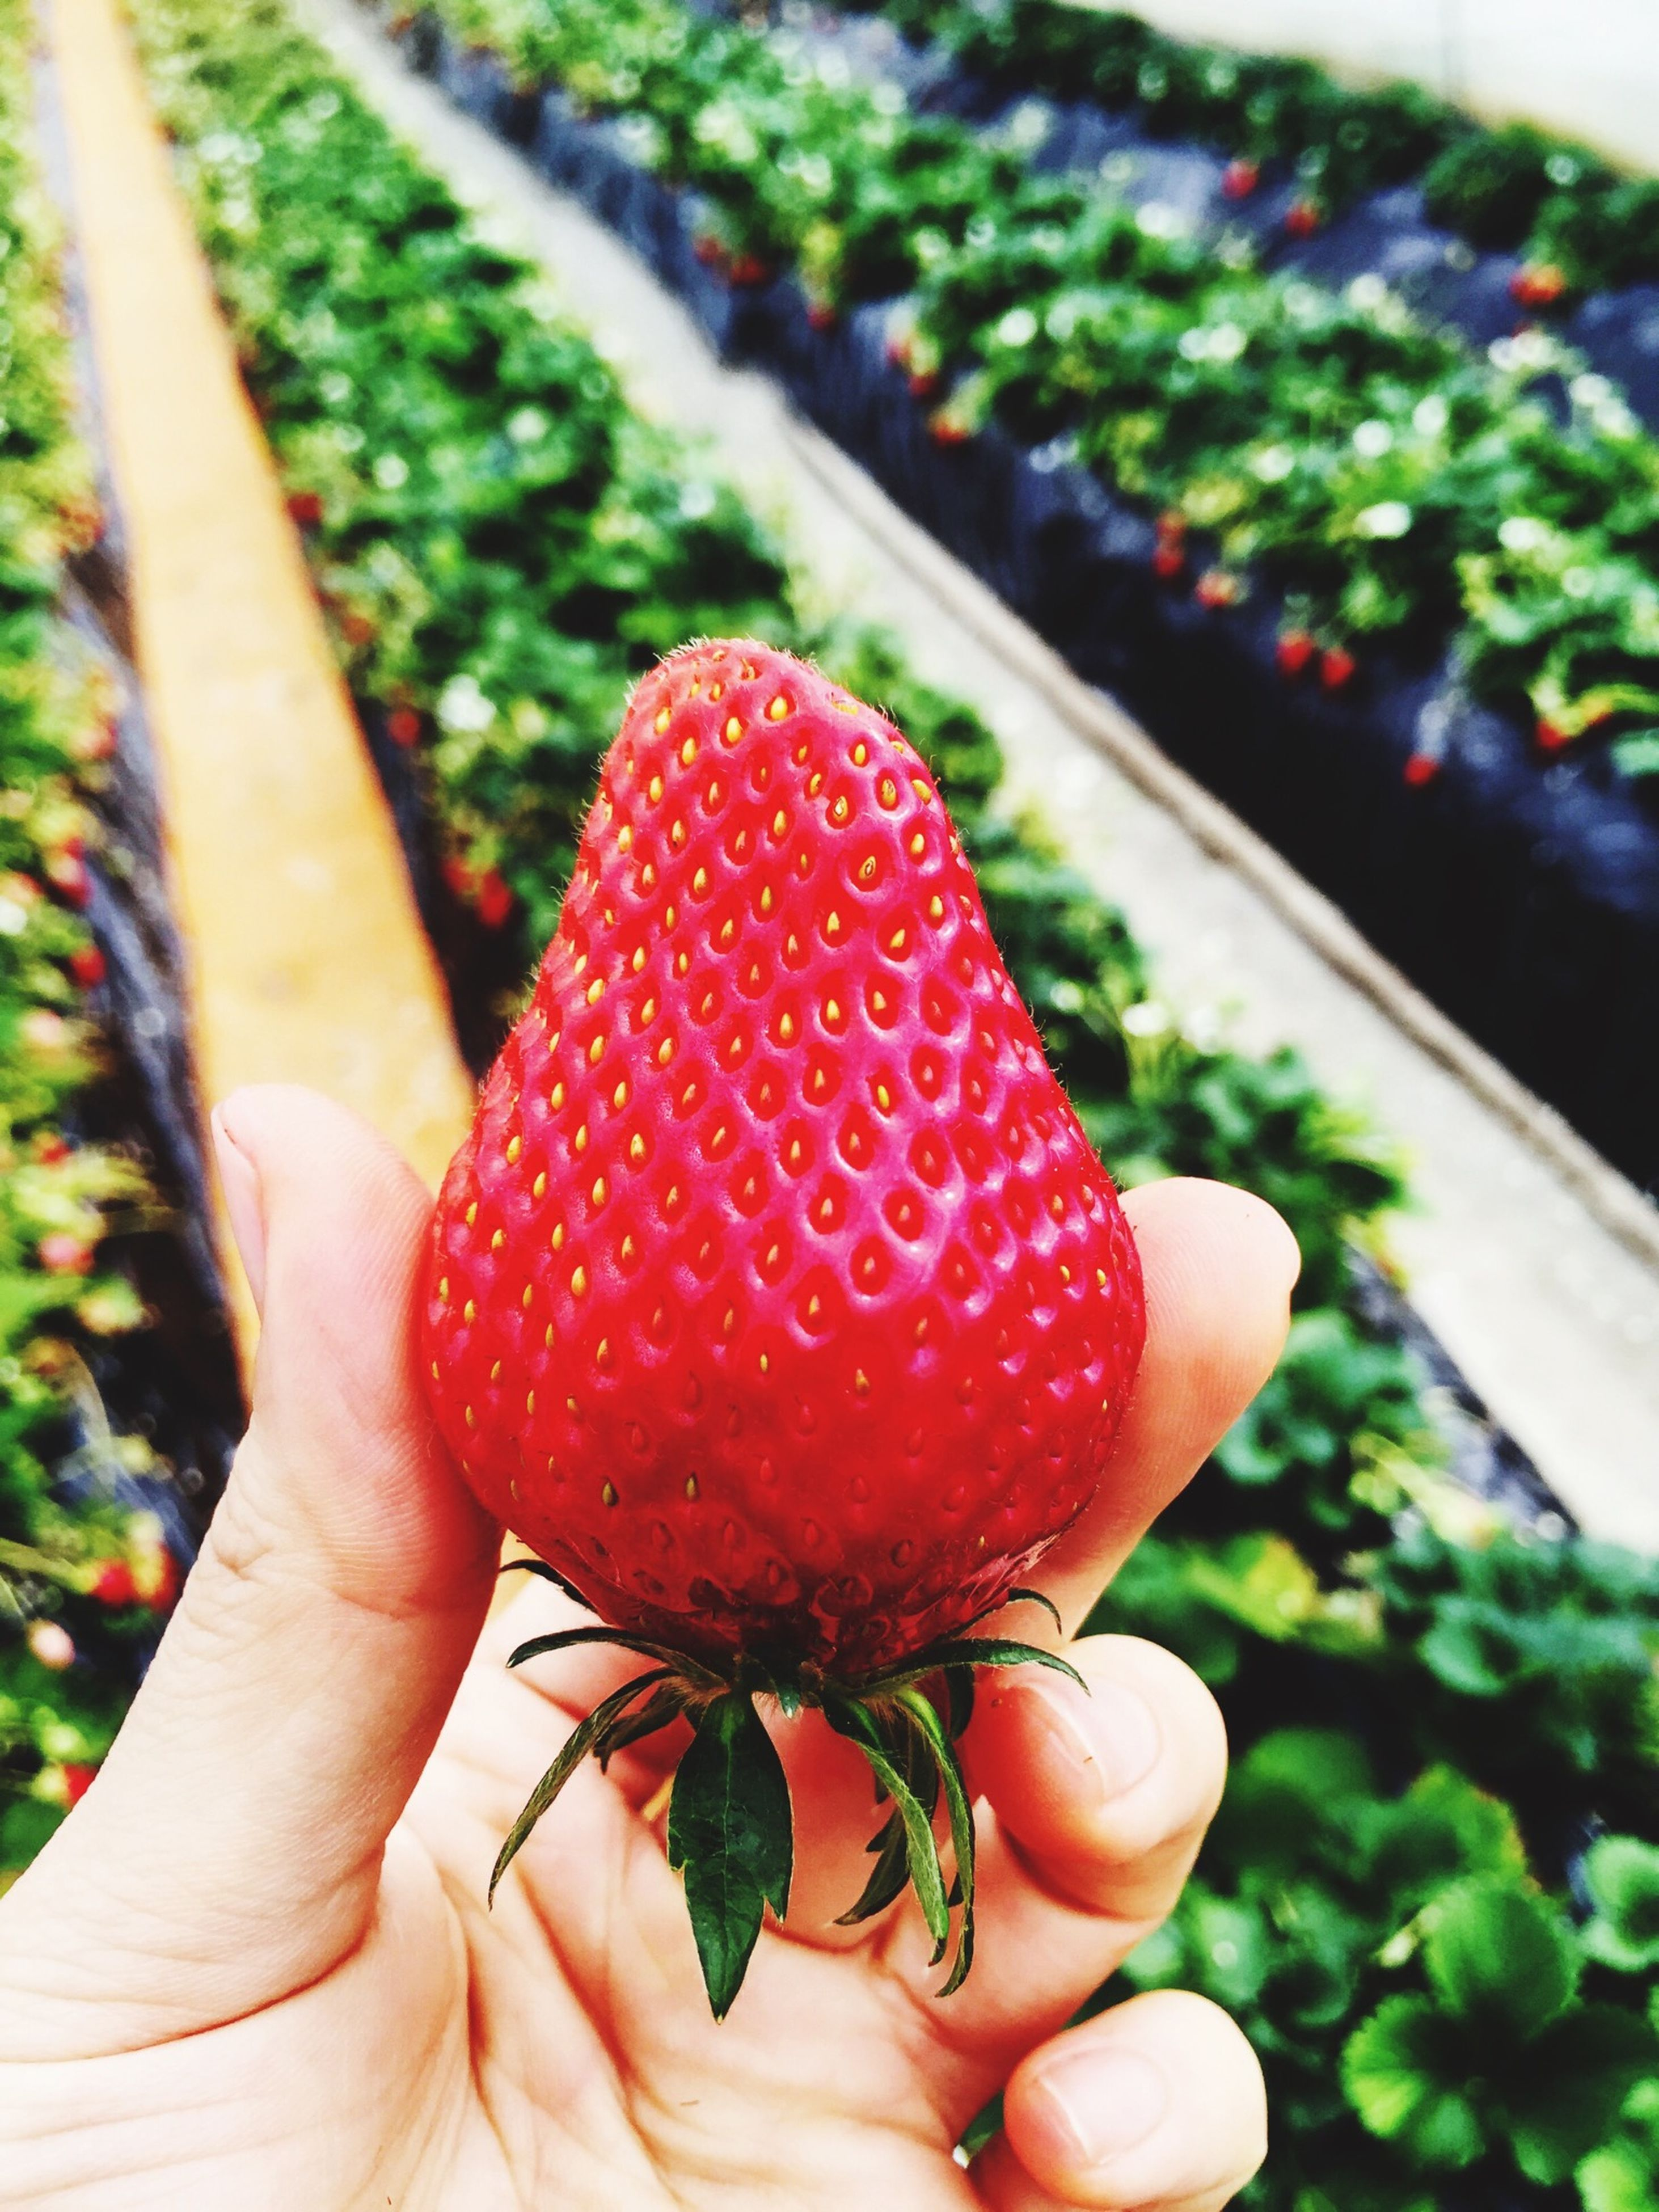 person, holding, part of, cropped, freshness, human finger, red, unrecognizable person, food and drink, personal perspective, close-up, fruit, focus on foreground, food, healthy eating, strawberry, lifestyles